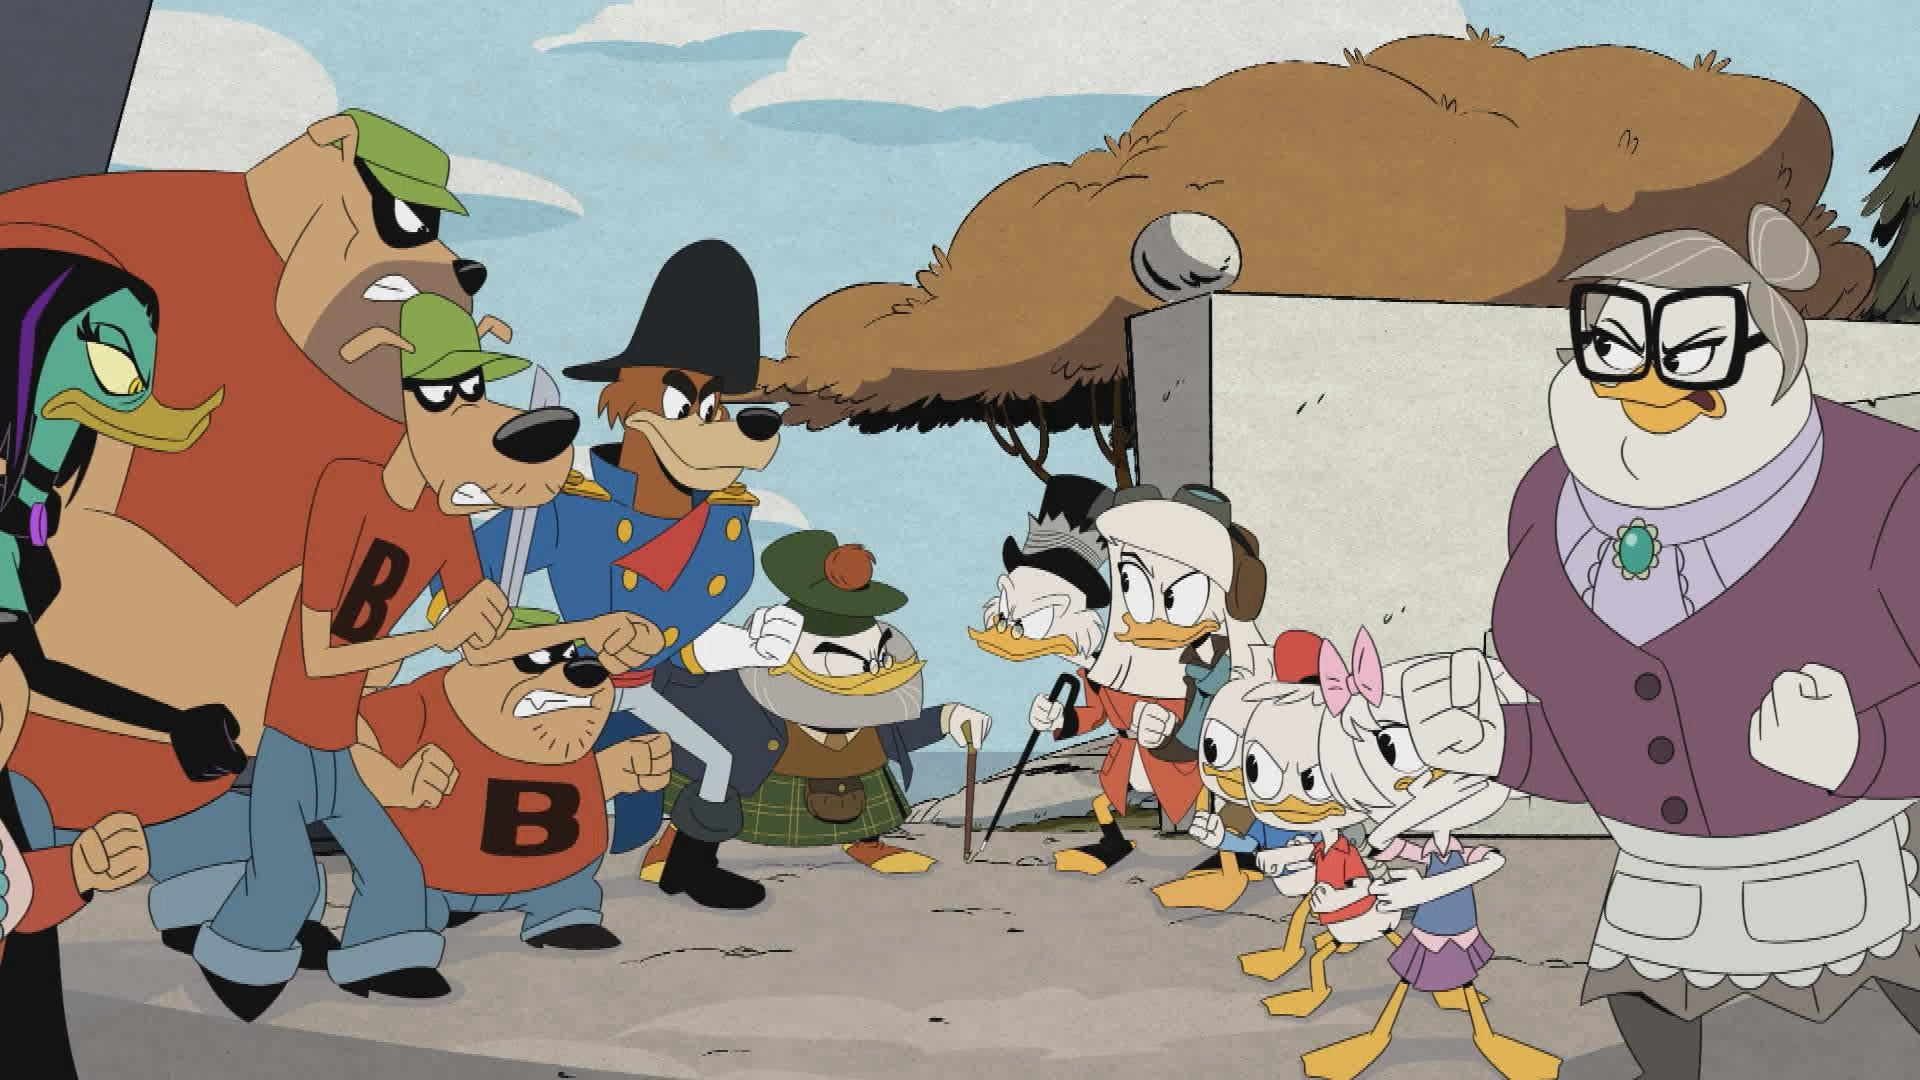 'DuckTales' Returns for New Star-Studded Season 2 Episodes: Watch the Trailer! (Exclusive)